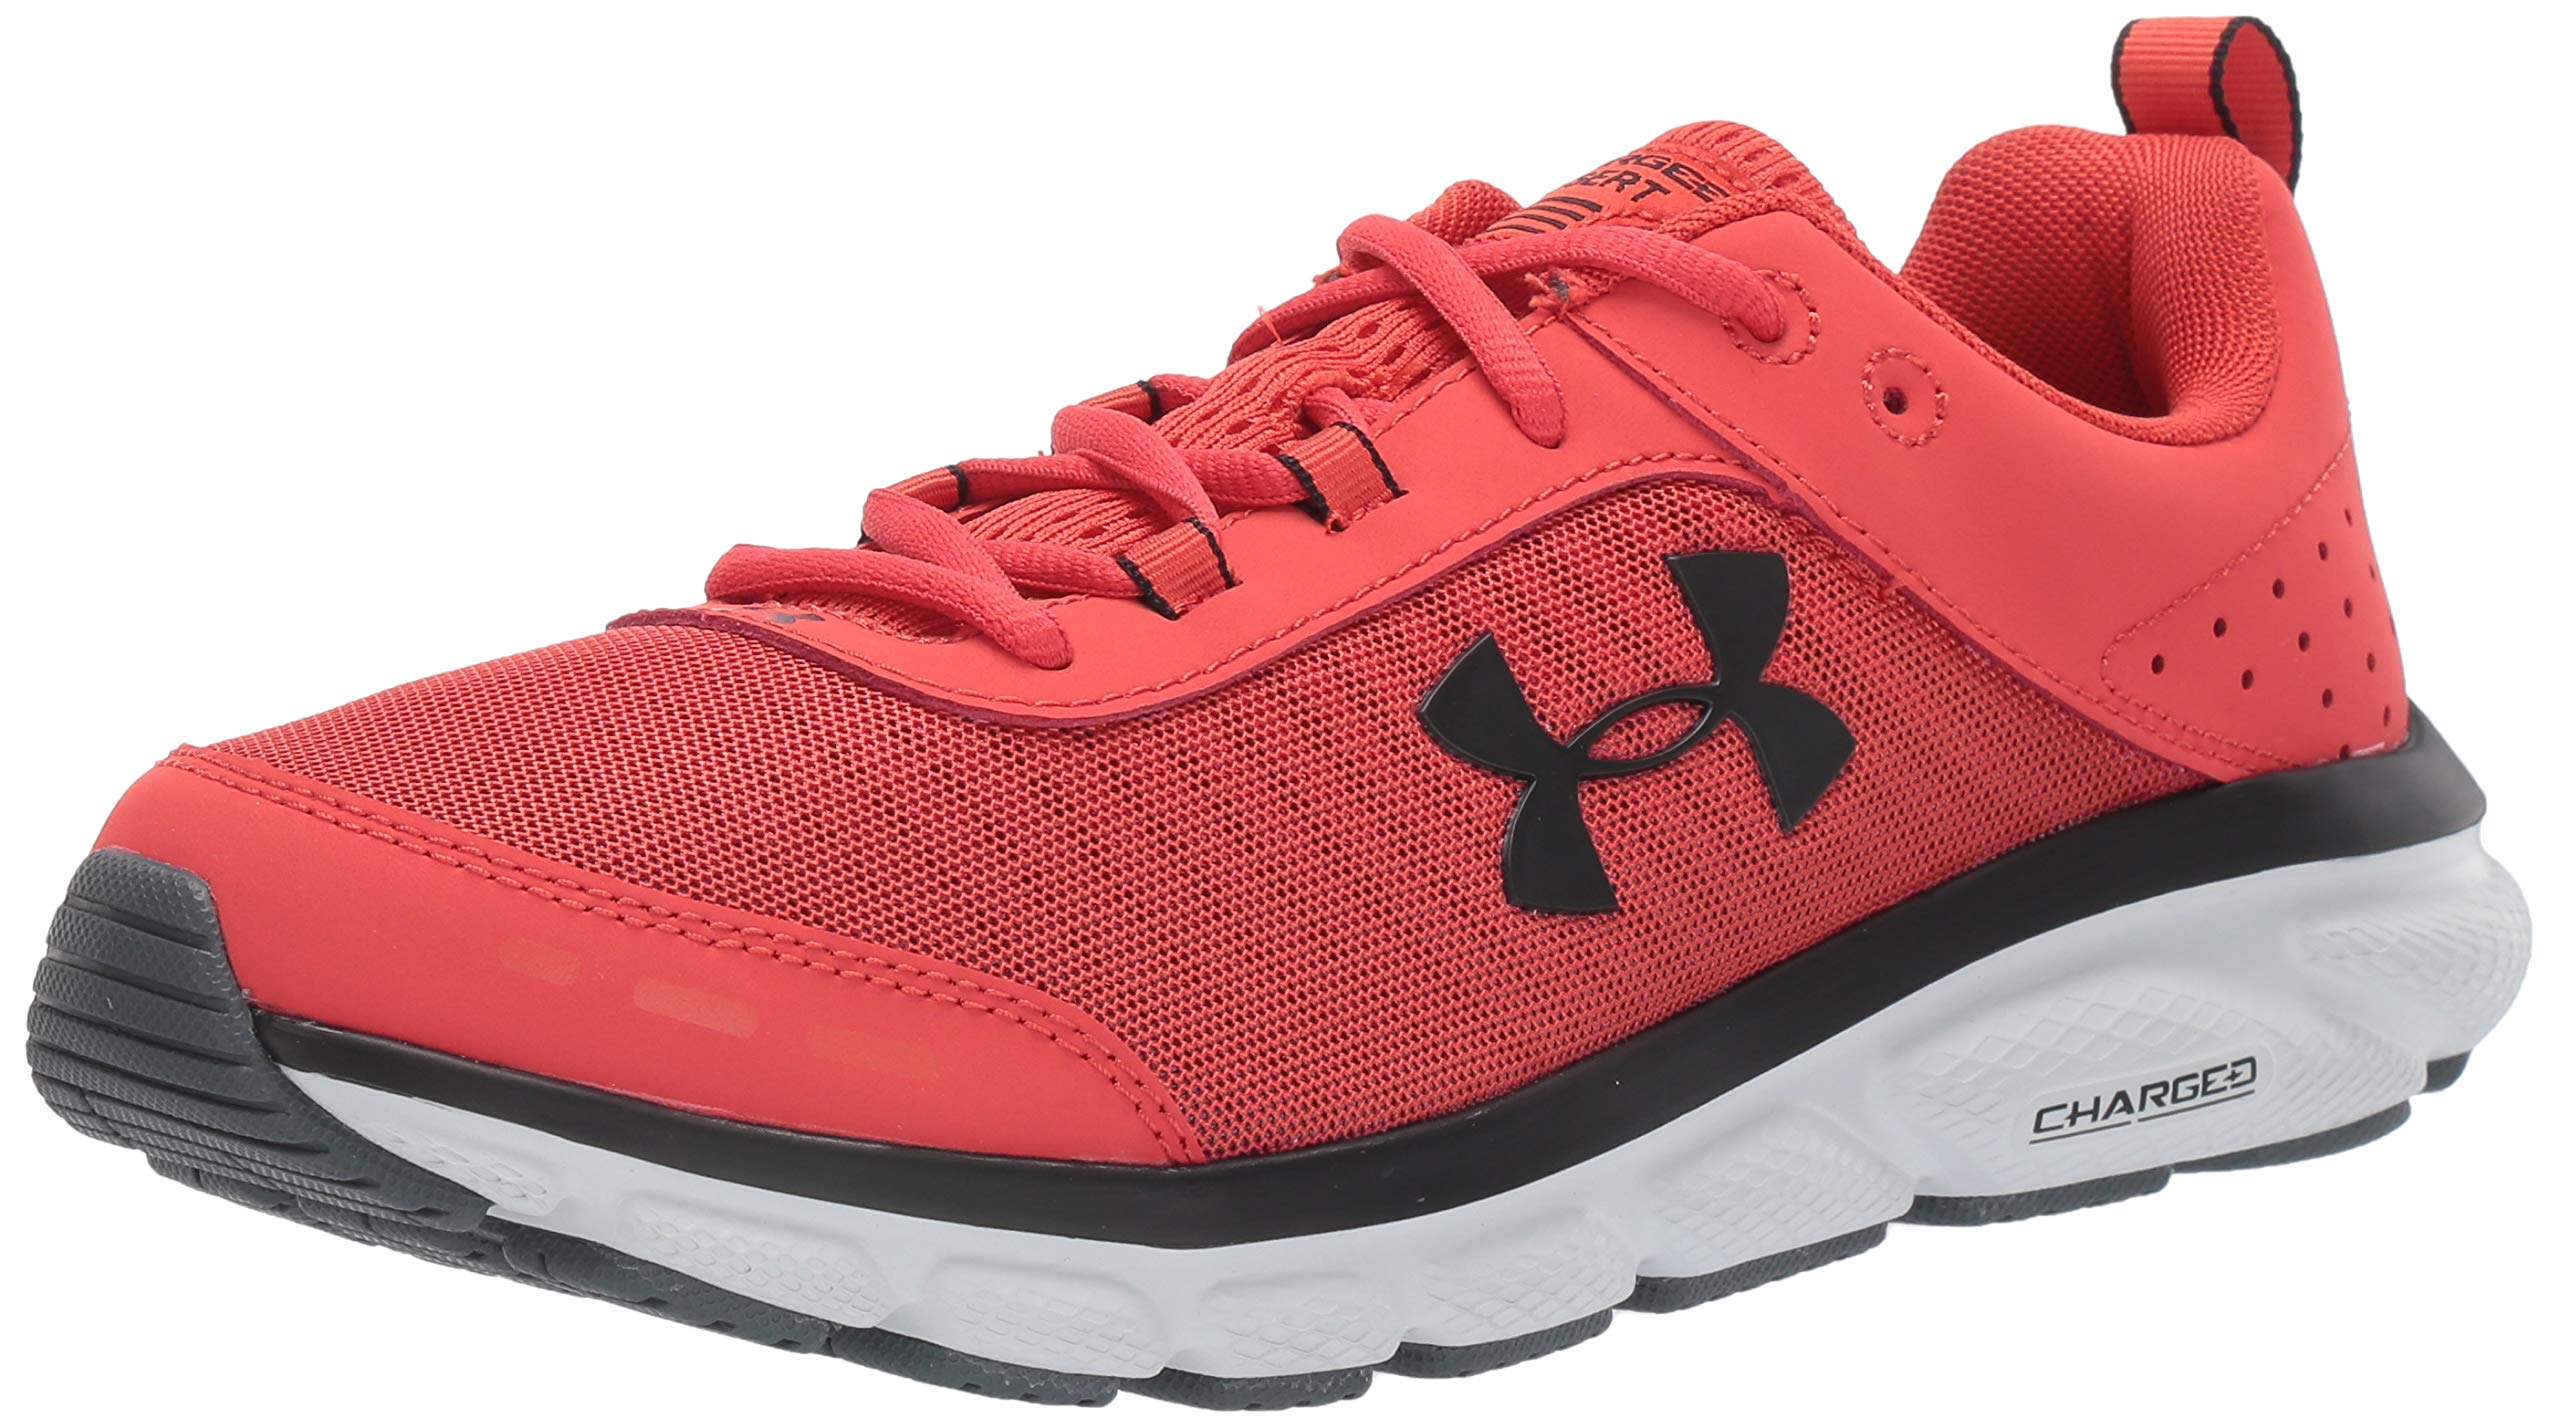 Under Armour Men's Charged Assert 8 Running Shoe, Martian Red (601)/Gray Flux, 10.5 by Under Armour